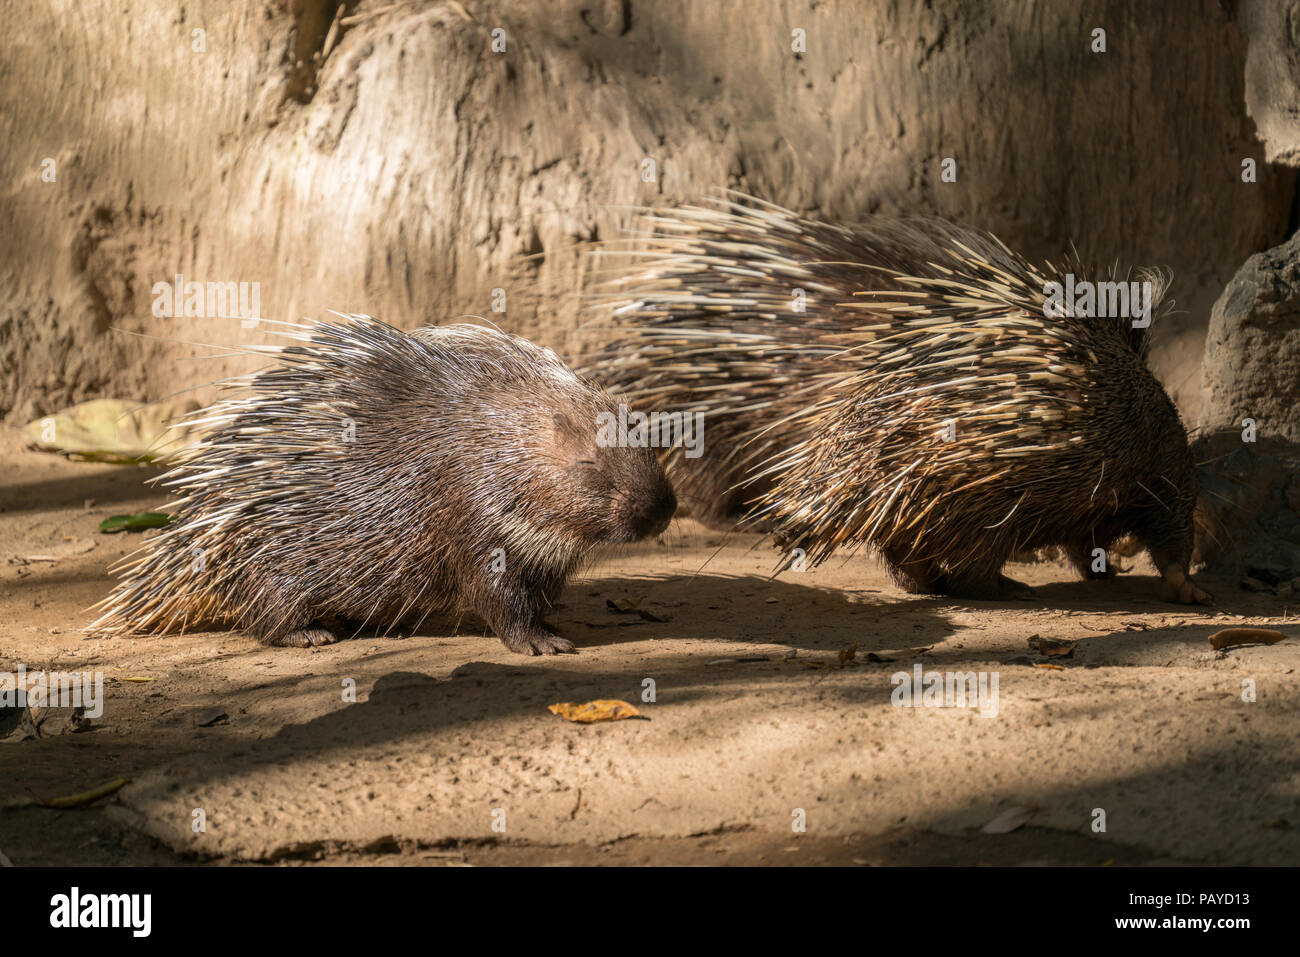 malayan porcupine, himalayan porcupine or large porcupine Stock Photo